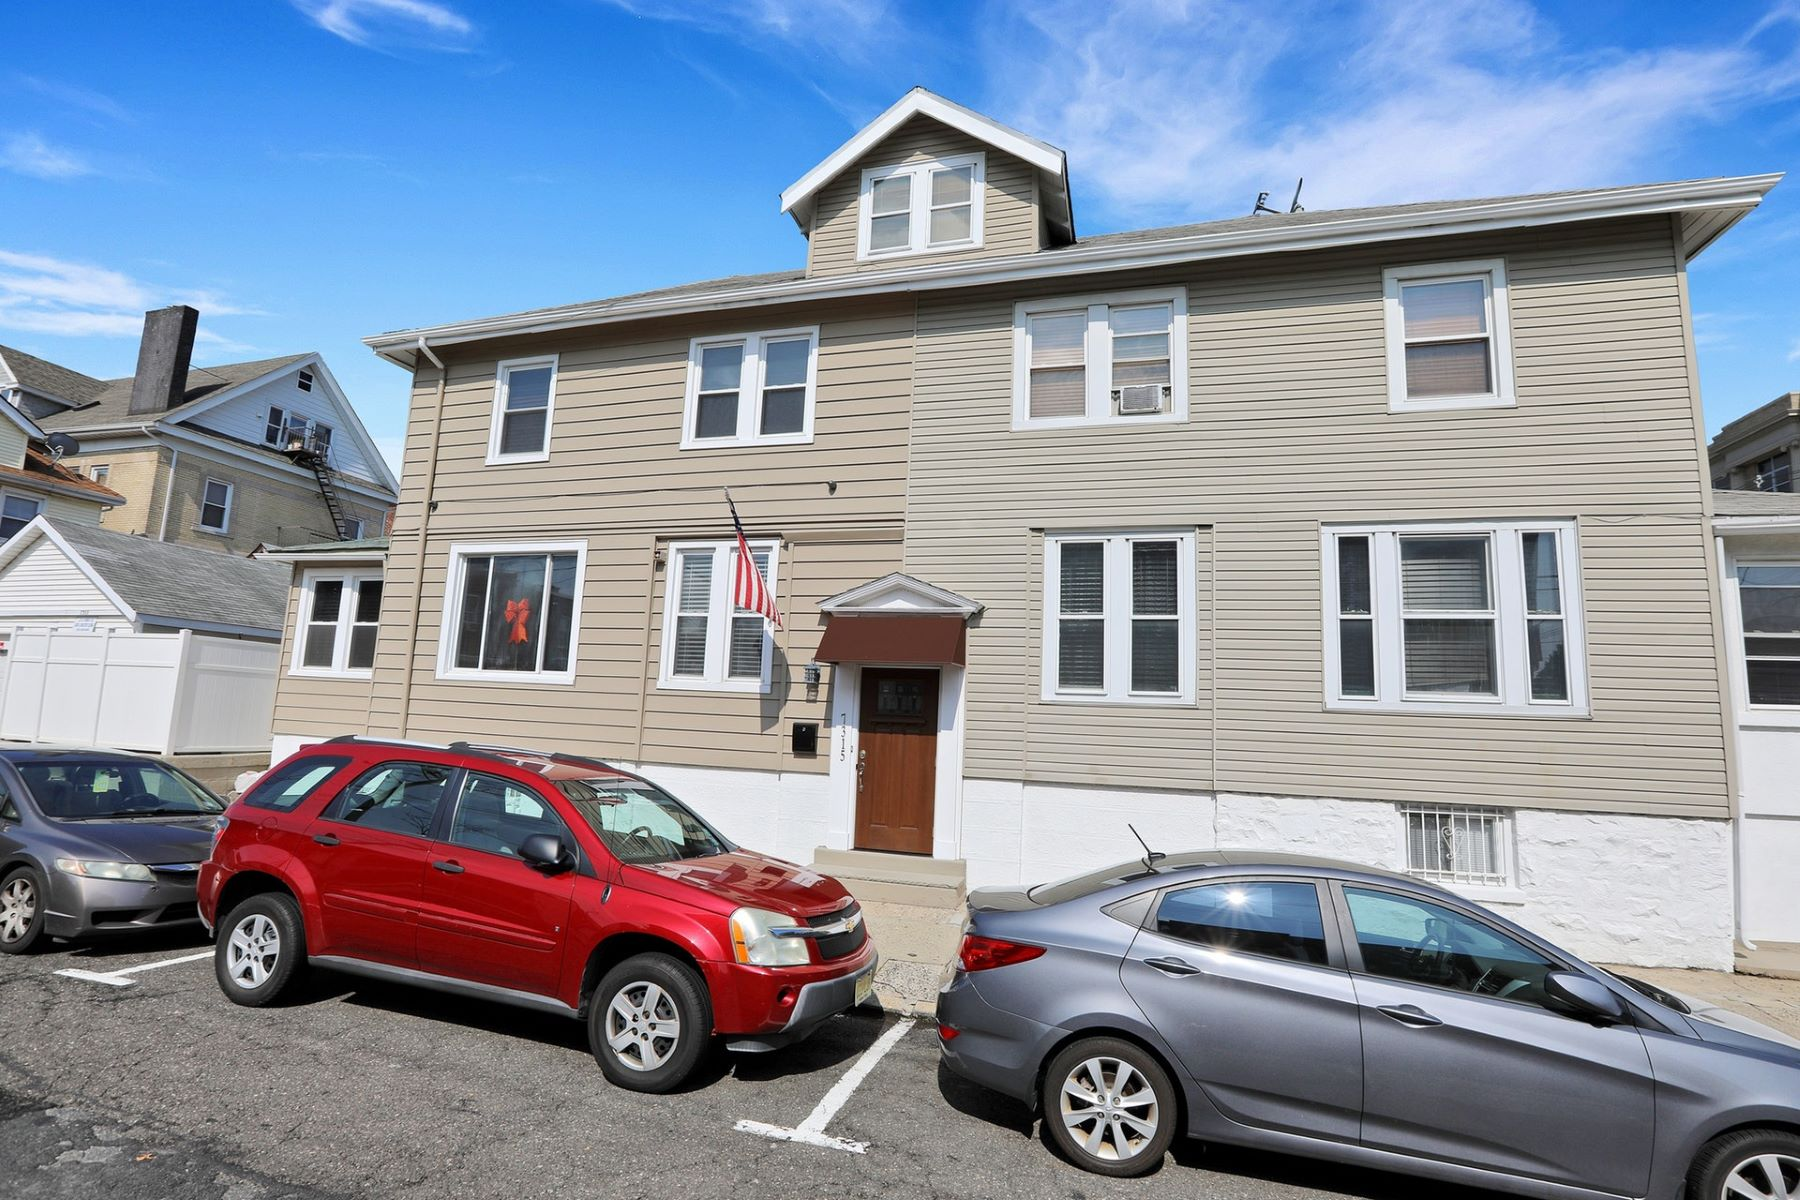 Single Family Homes for Sale at Located in a highly desirable section of North Bergen! 7315 Hudson Avenue North Bergen, New Jersey 07047 United States